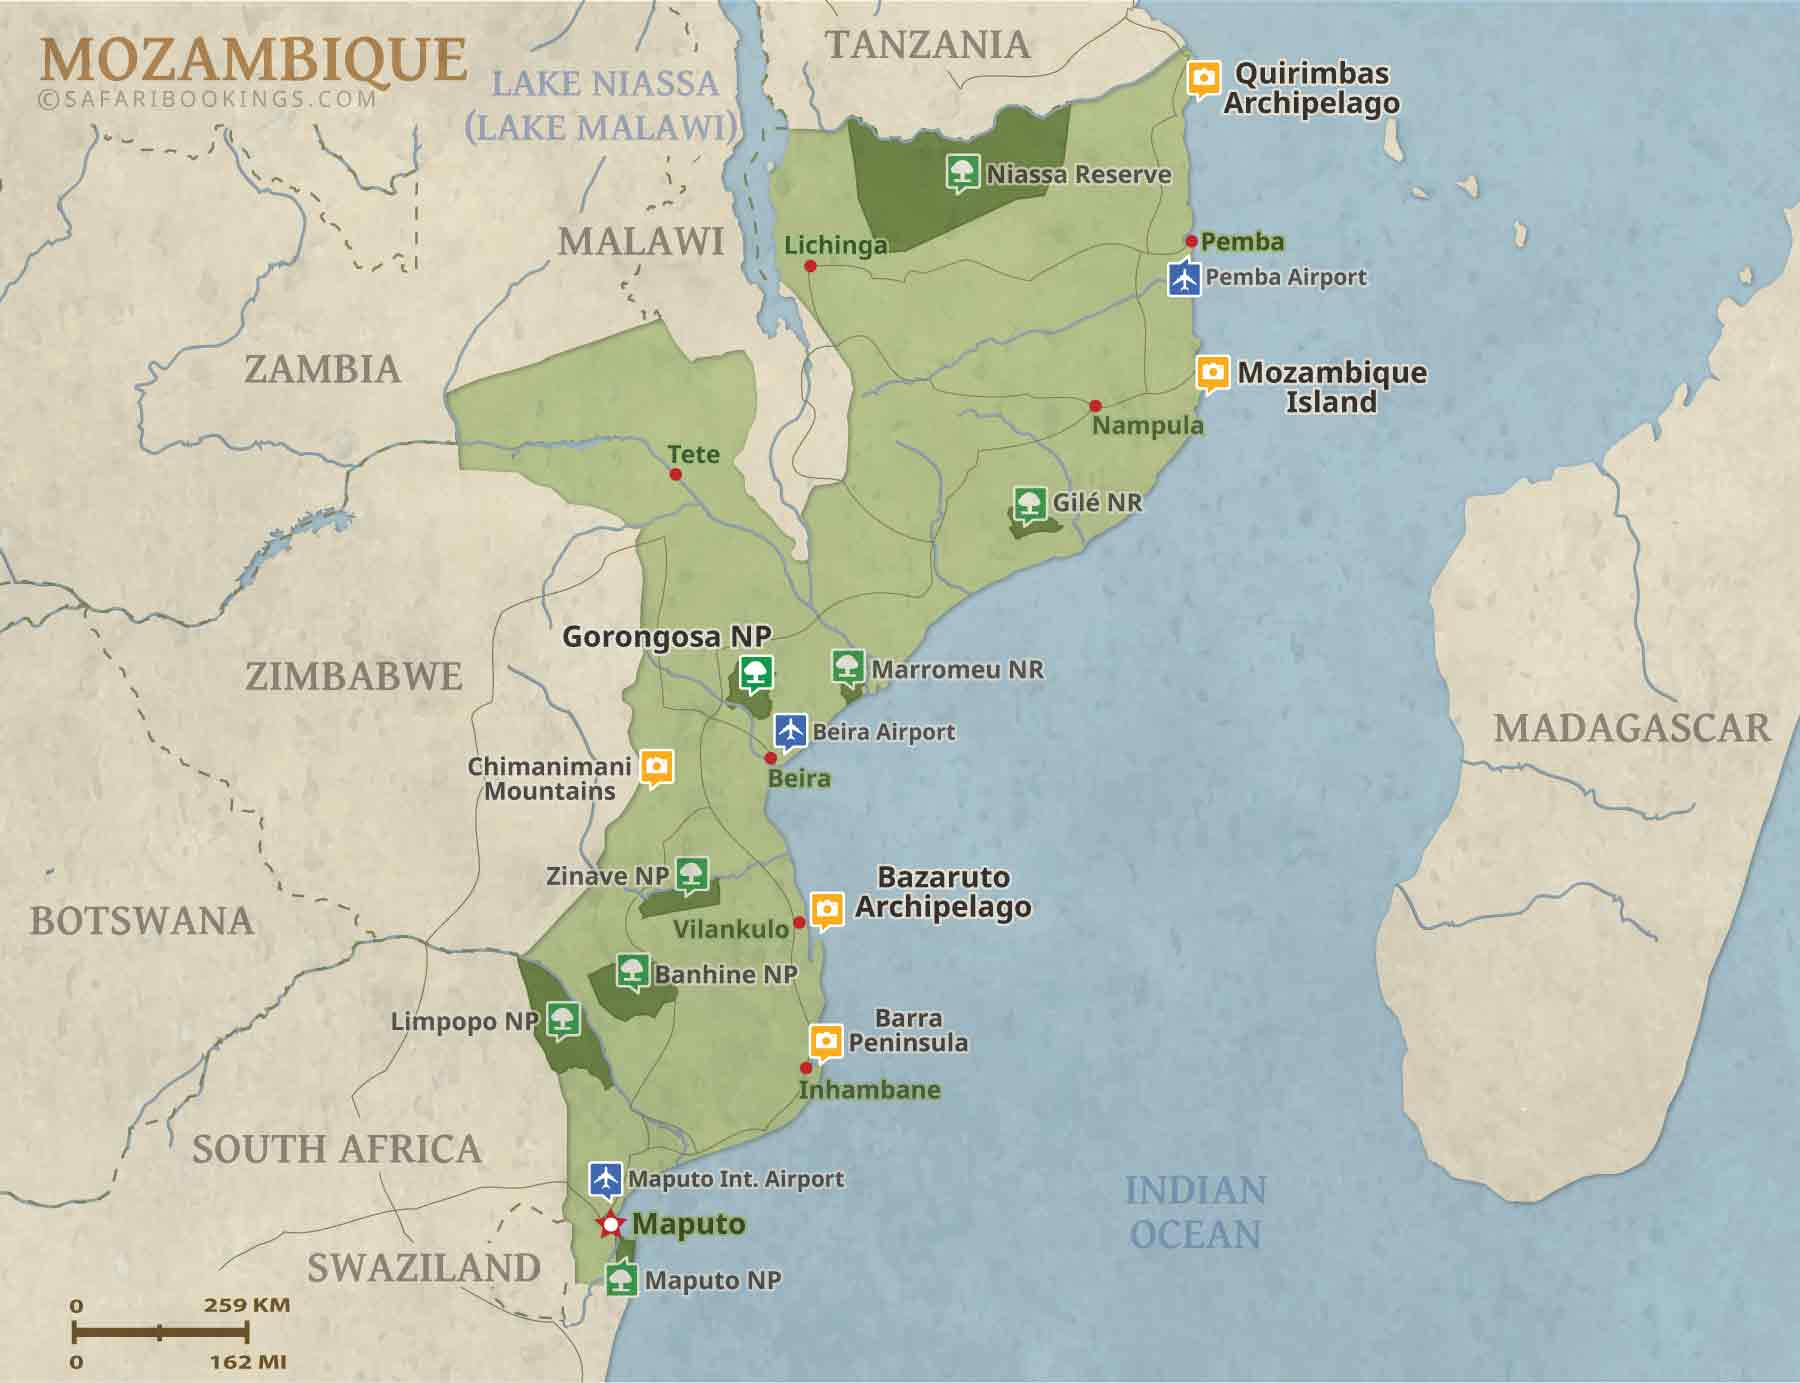 Popular Routes in Mozambique